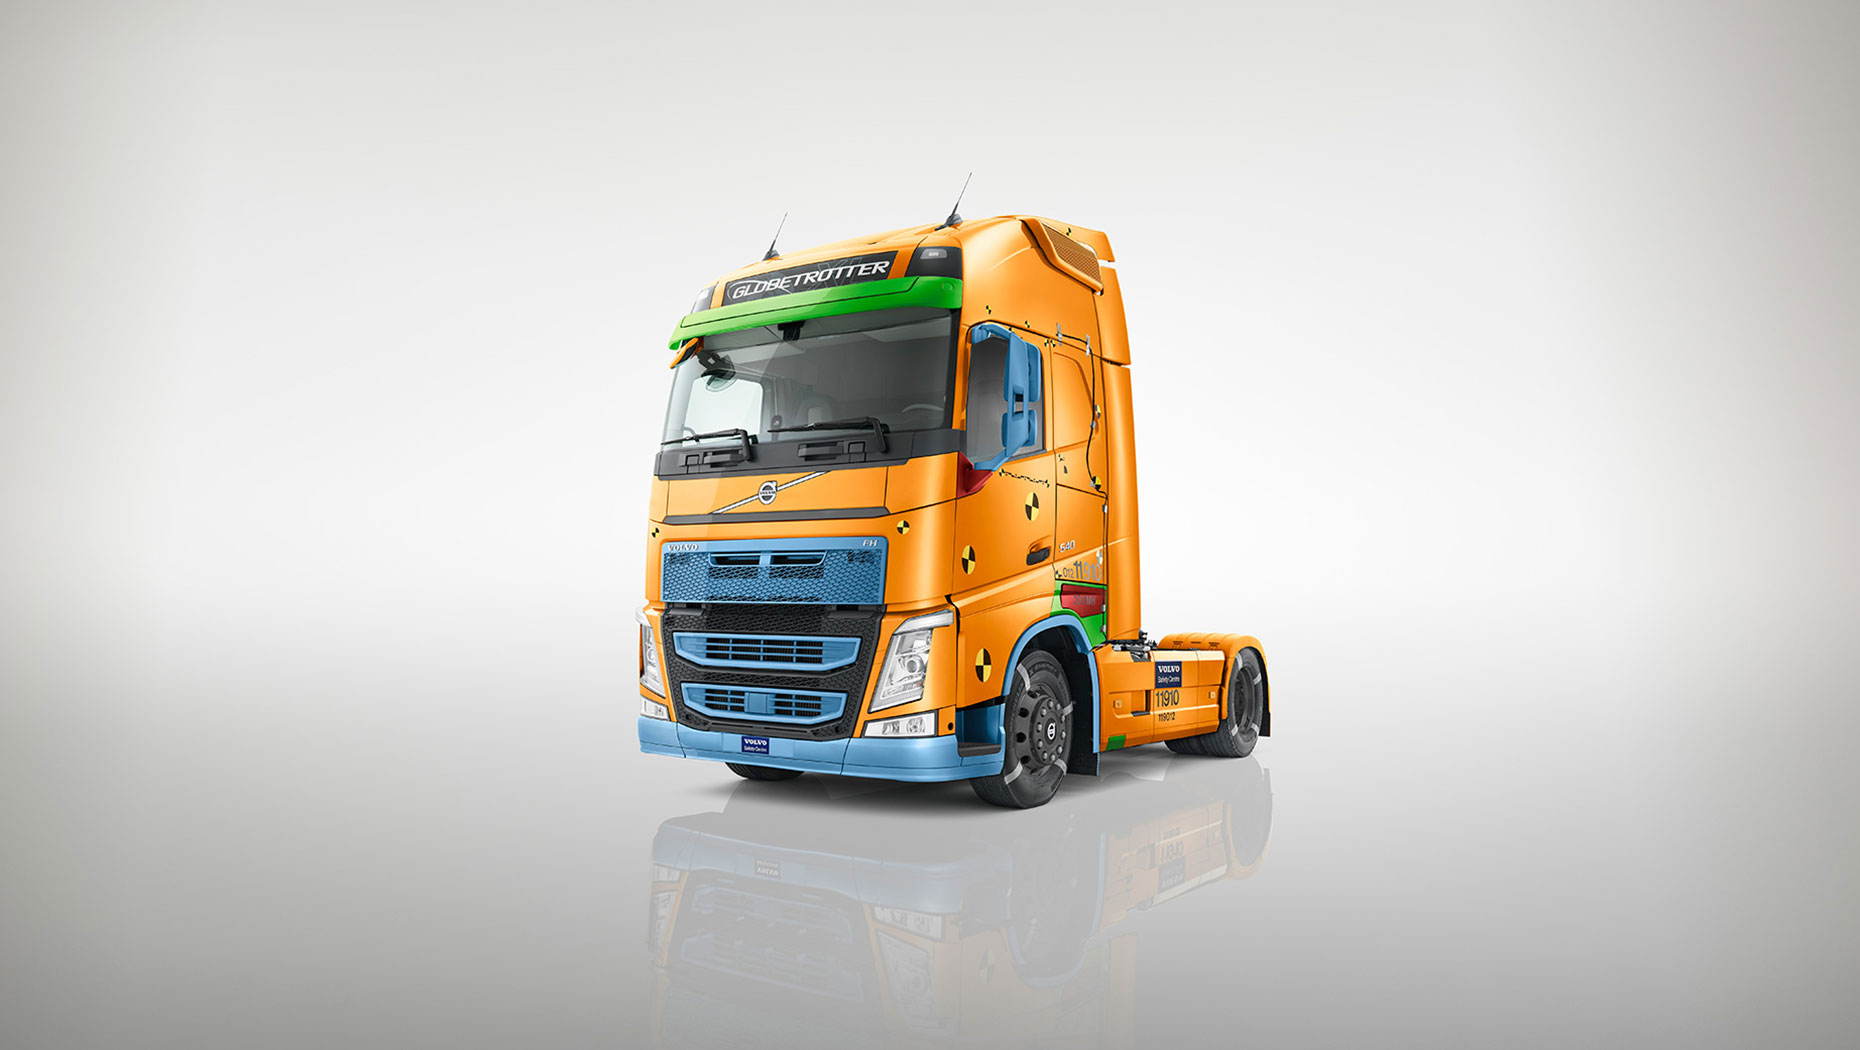 Volvo Trucks Safety Report focuses on vulnerable road users